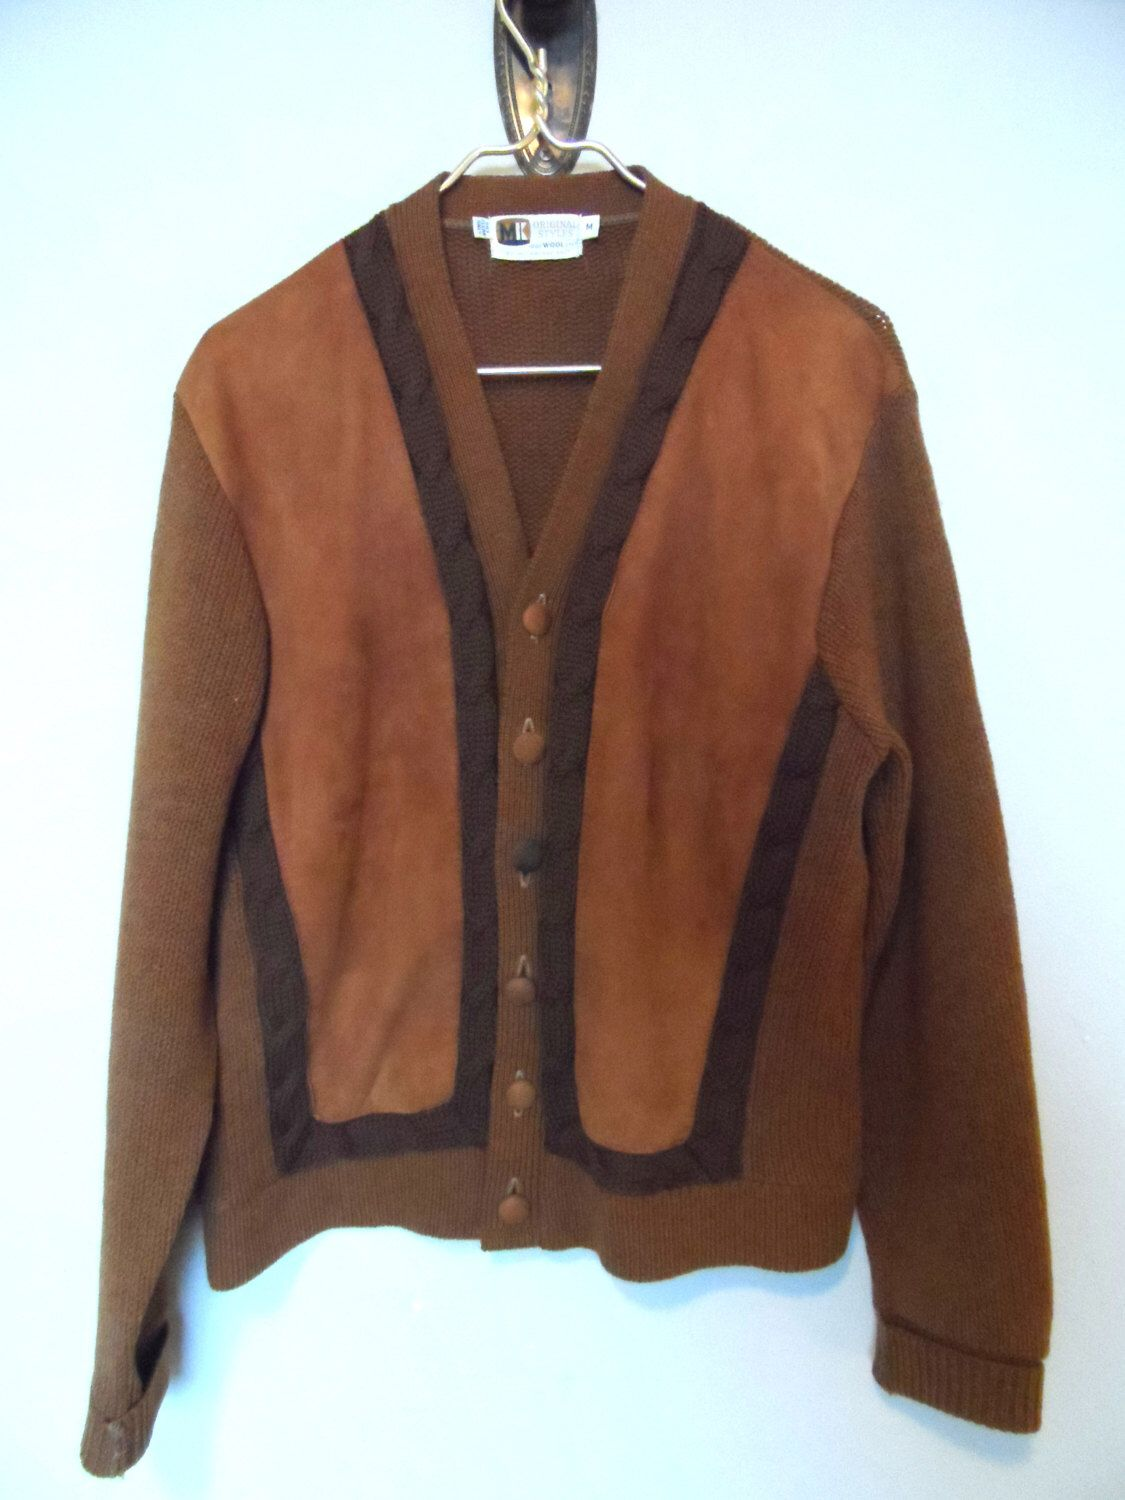 Vintage Men's Suede & Wool Cardigan Sweater* Size M . Genuine Leather  Suede .